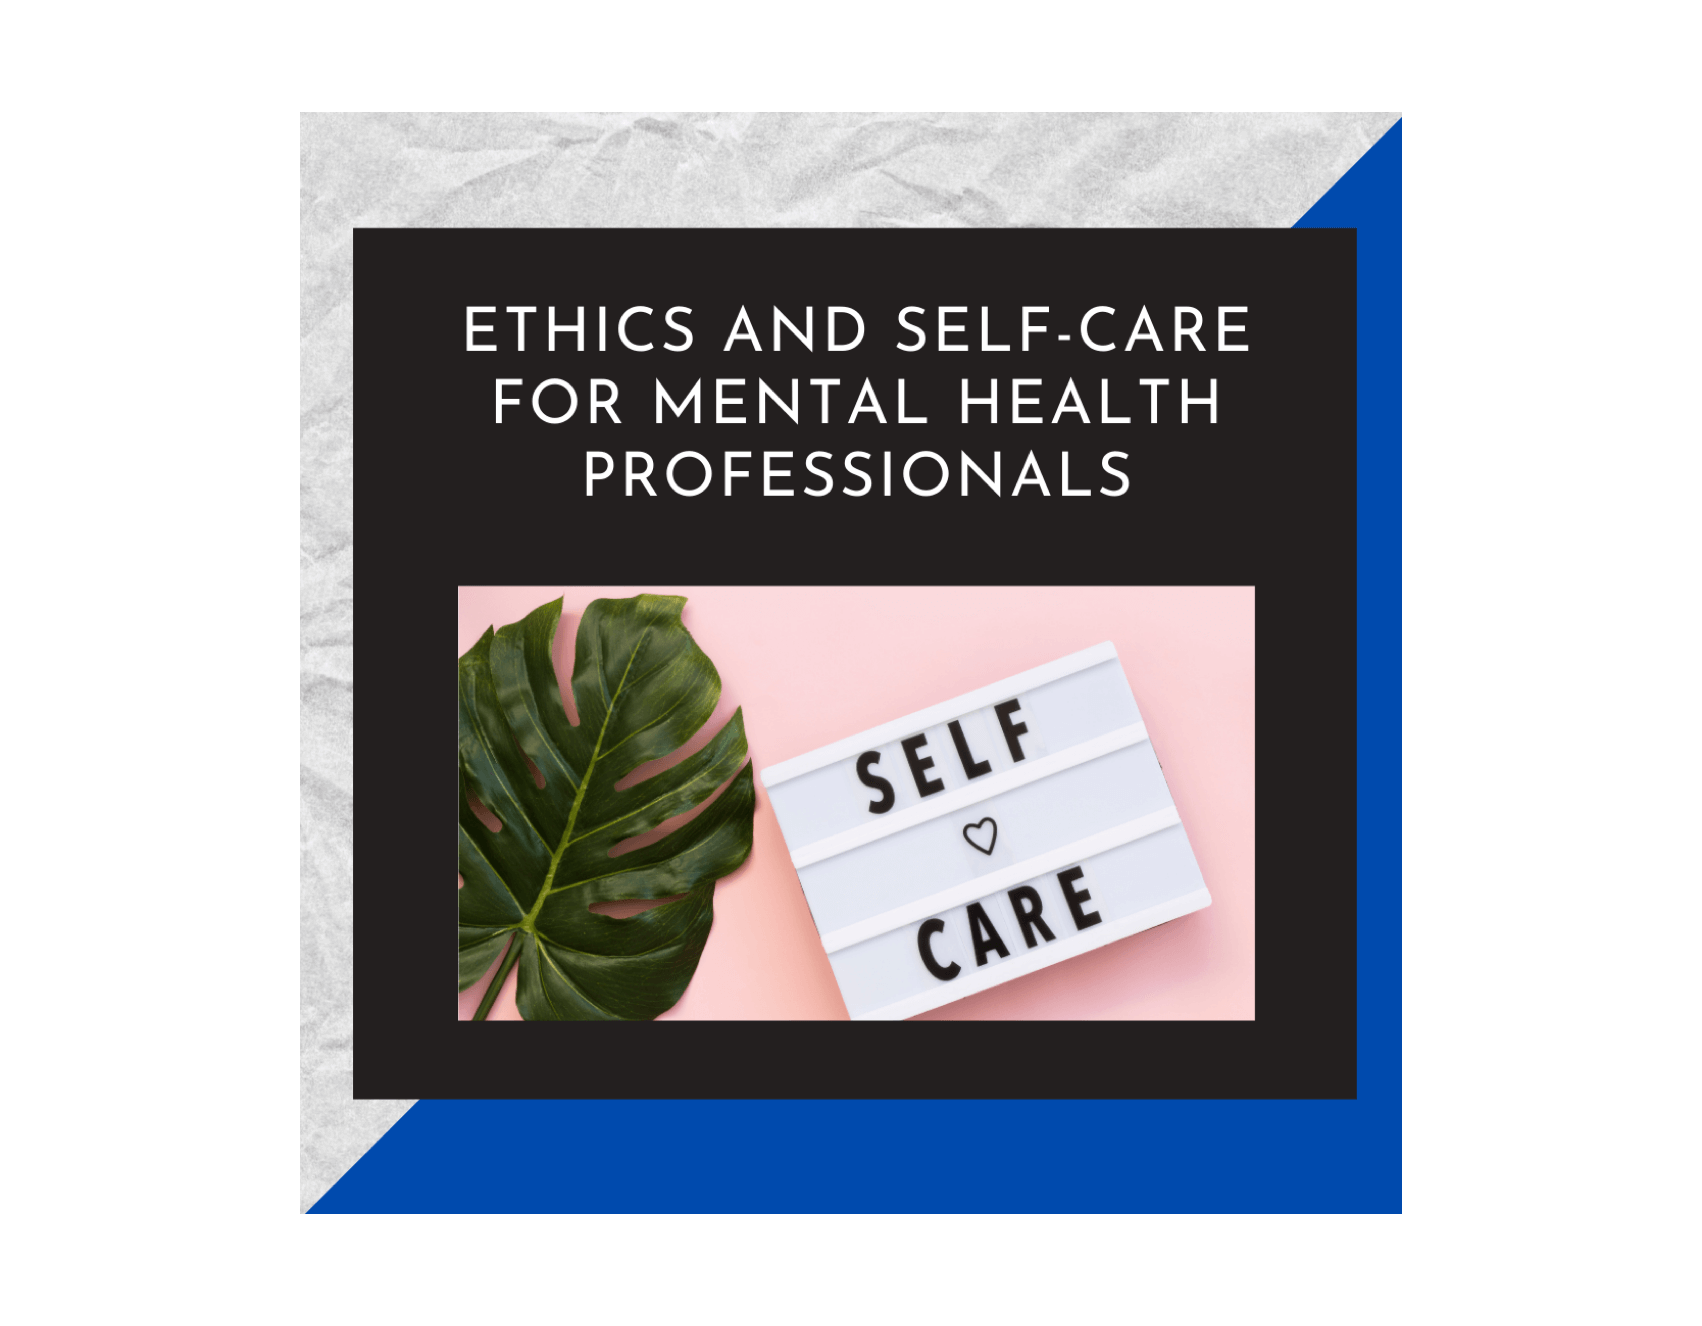 Ethics and Self-Care for Mental Health Professionals